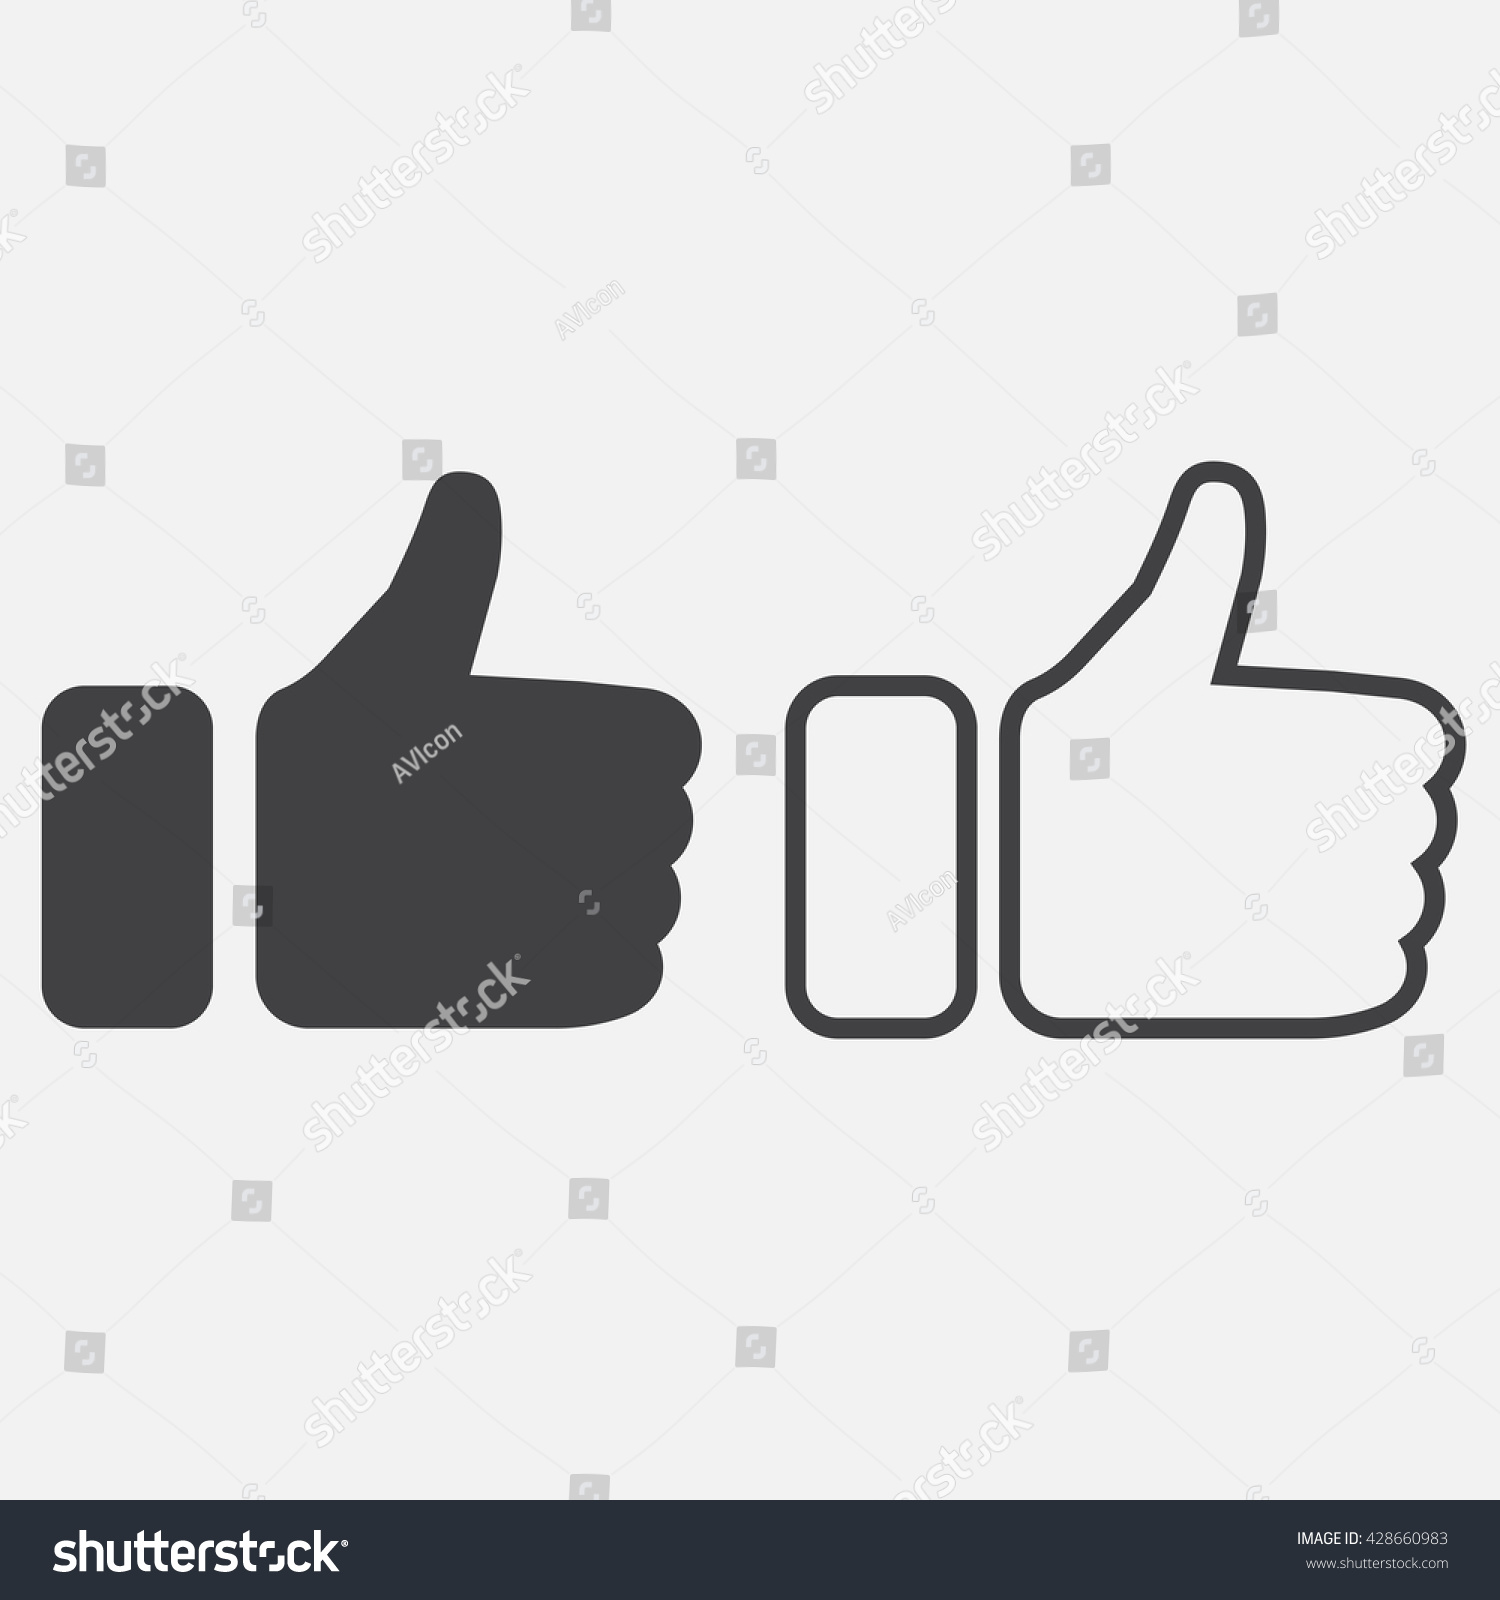 Thumbs up and thumbs down emoticons Vector illustration